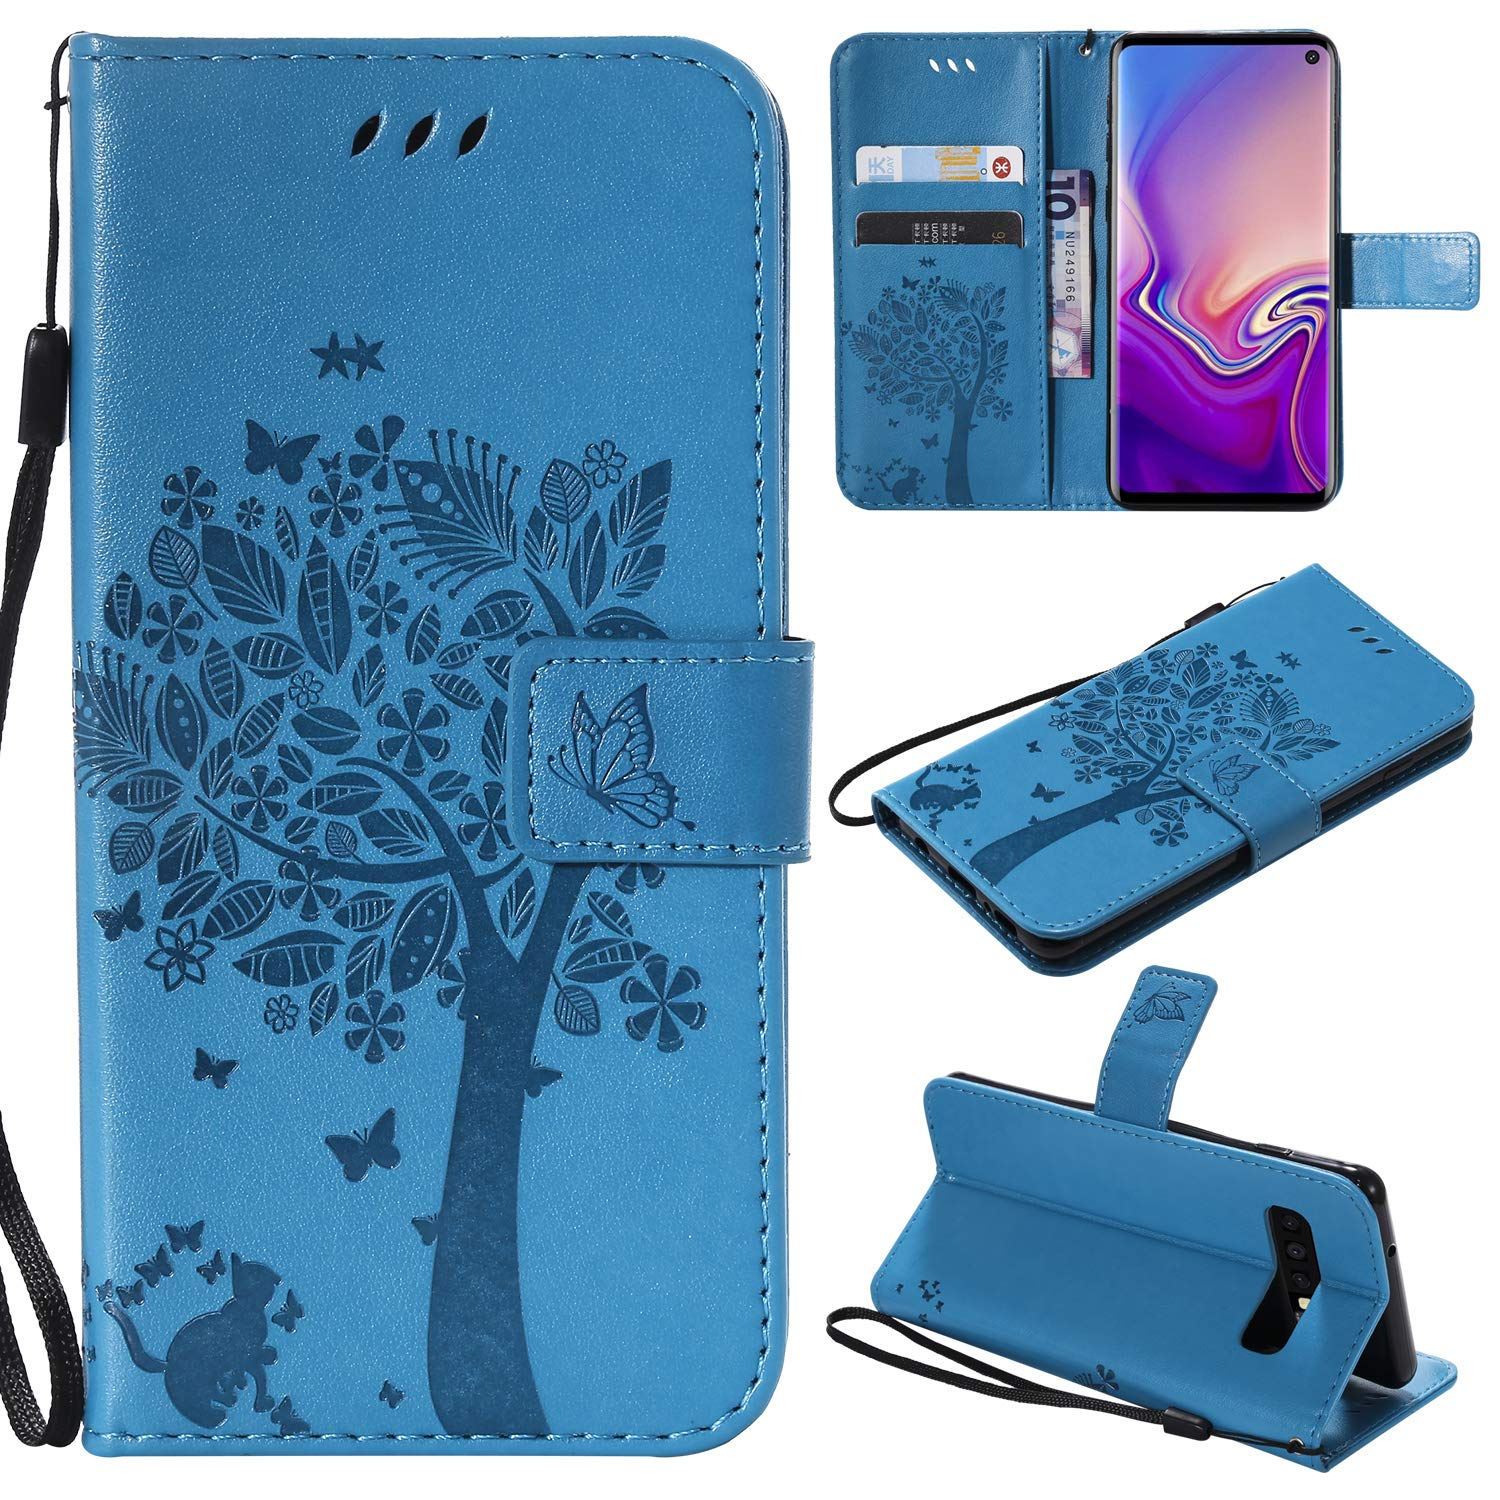 Galaxy S10 Plus Case,Samsung S10 Plus Case,Wallet Case,PU Leather Case Floral Tree Cat Embossed Purse with Kickstand Flip Cover Card Holders Hand Strap for Samsung Galaxy S10 Plus Brown